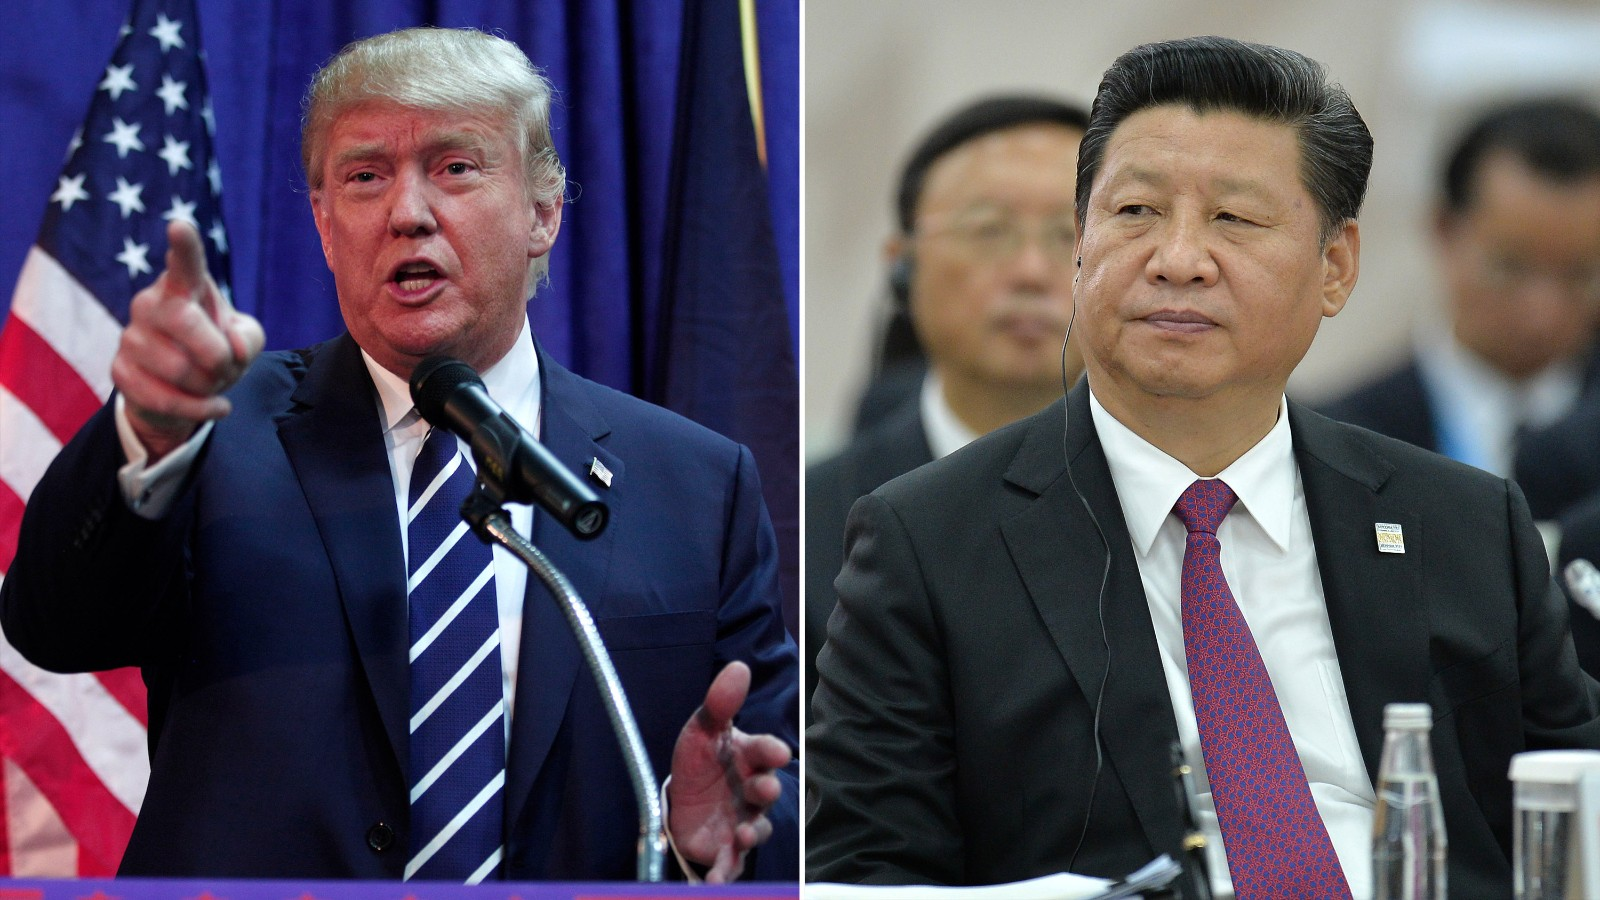 Trump relents to Xi Jinping on 'one China' policy